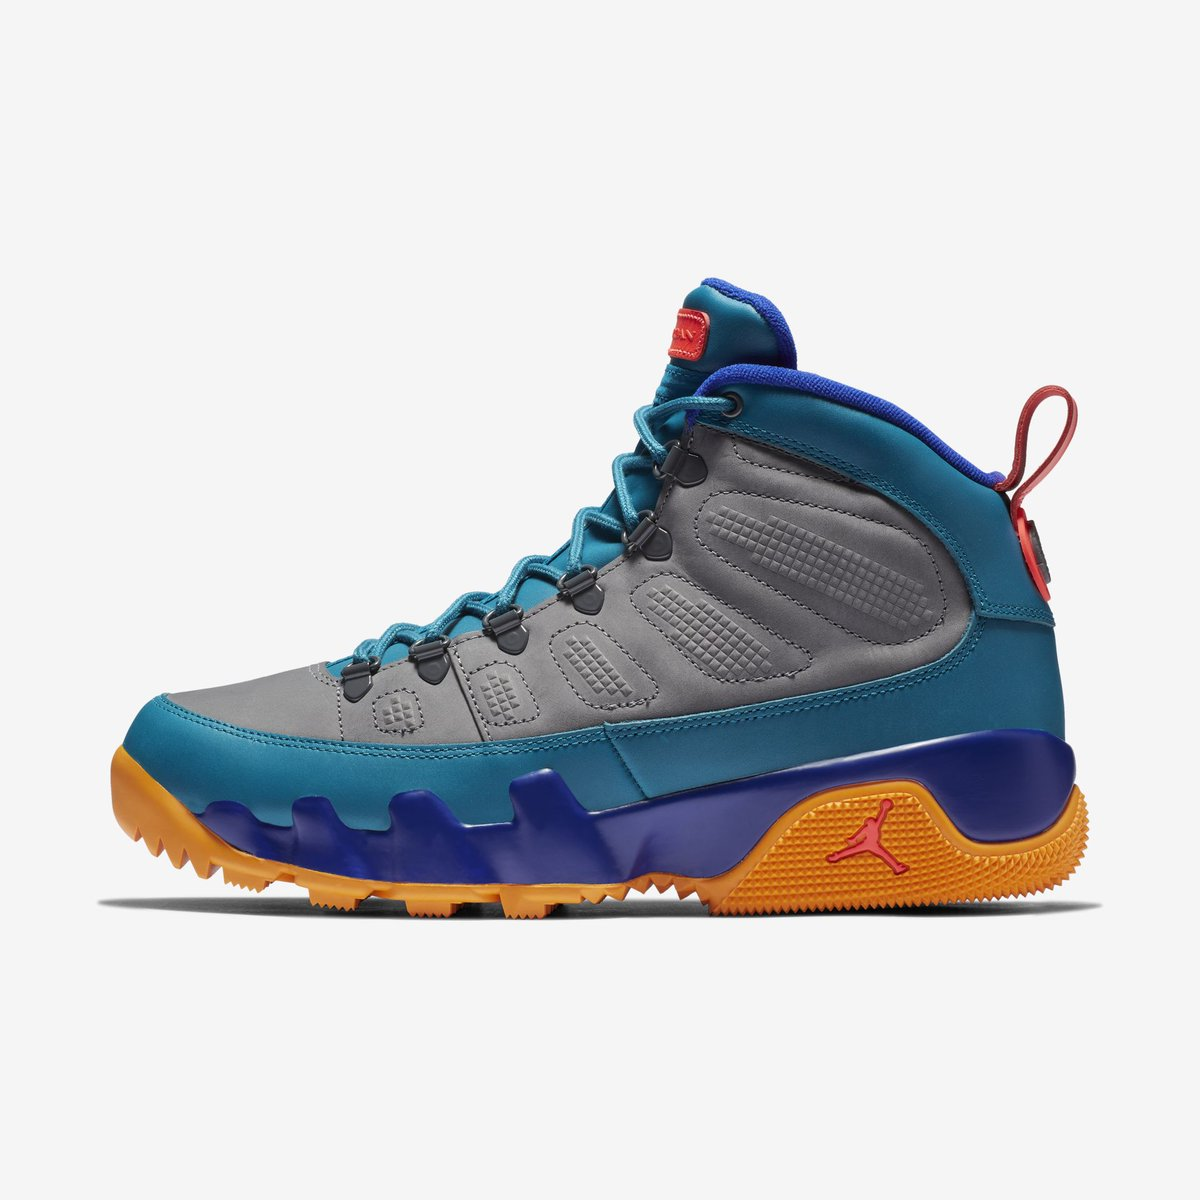 5186876a0f7626 Jordan 9 Retro Boot NRG official images October 13th  https   j23app.com s 2013  pic.twitter.com PBSZU6oZAC